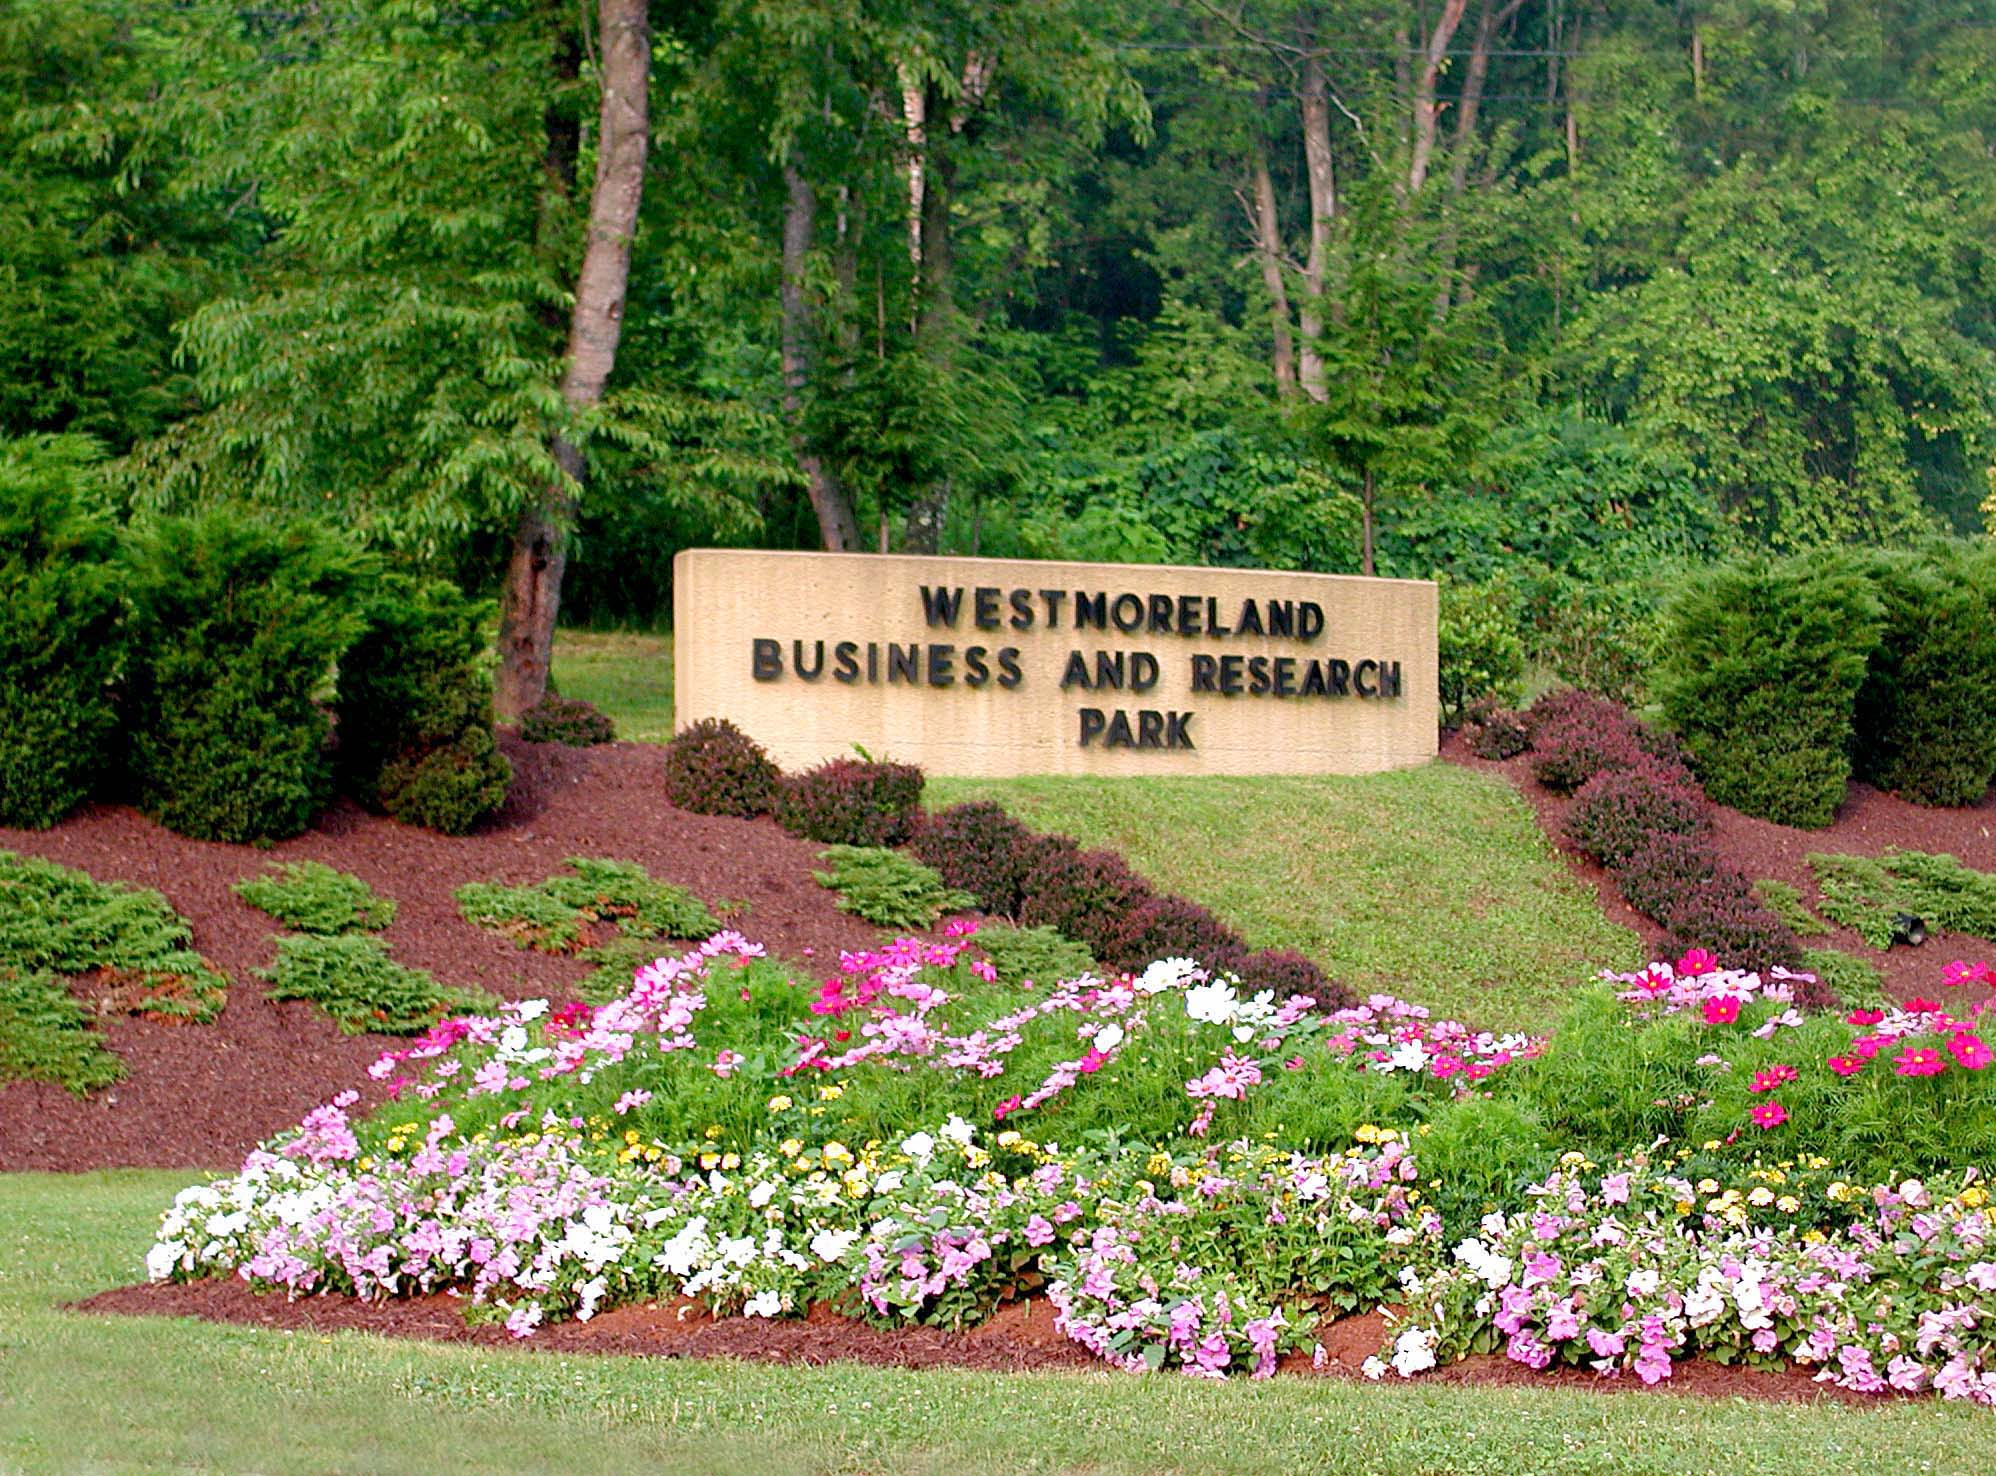 Business and Research Park Entrance Sign